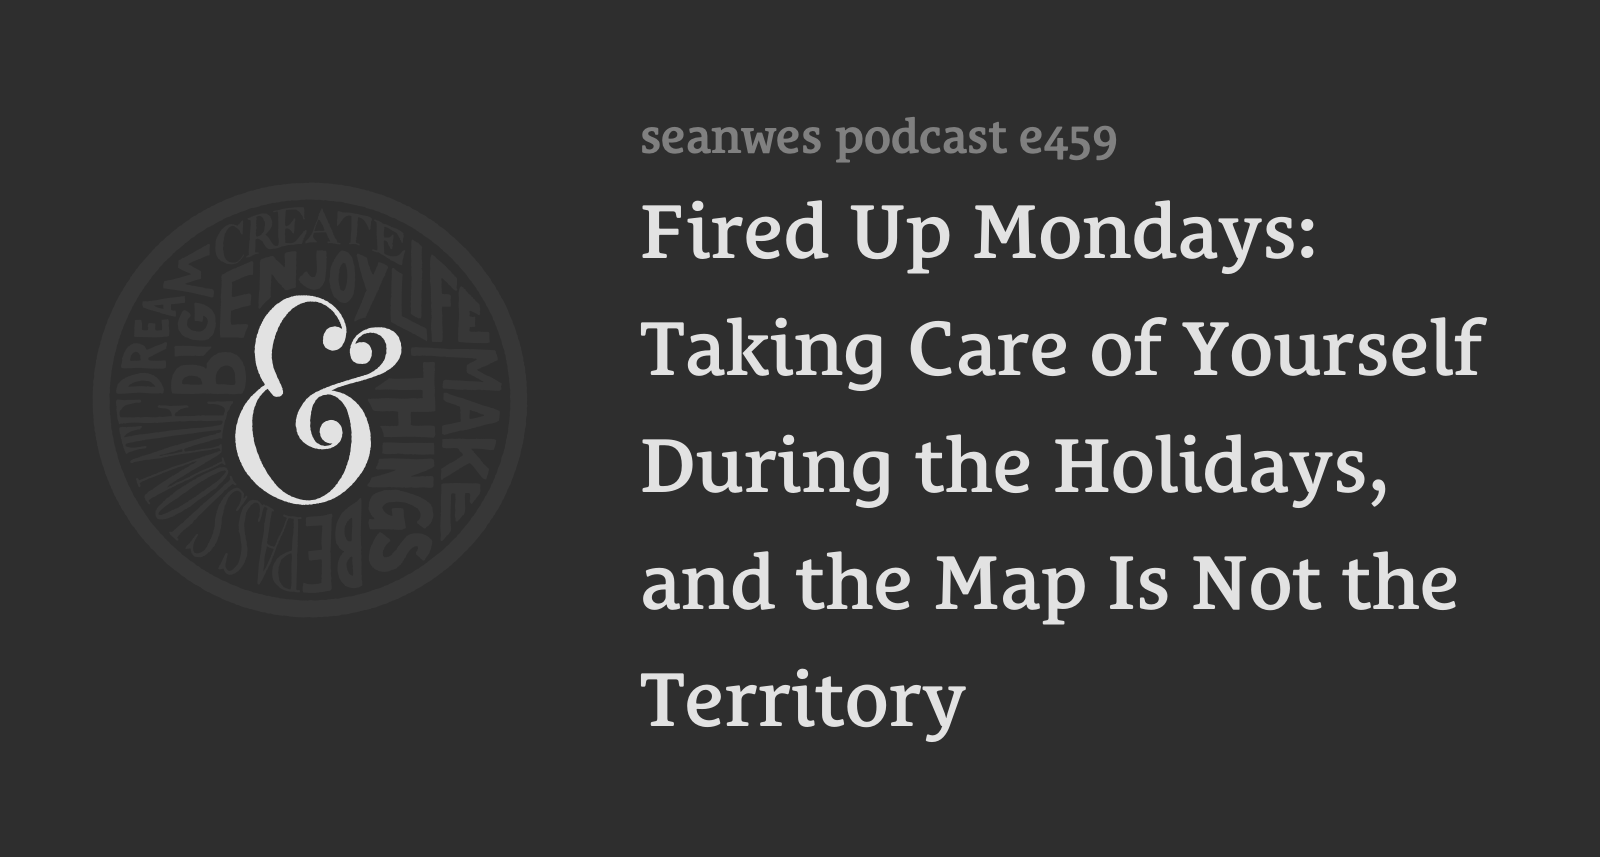 459: Fired Up Mondays: Taking Care of Yourself During the Holidays, and the Map Is Not the Territory